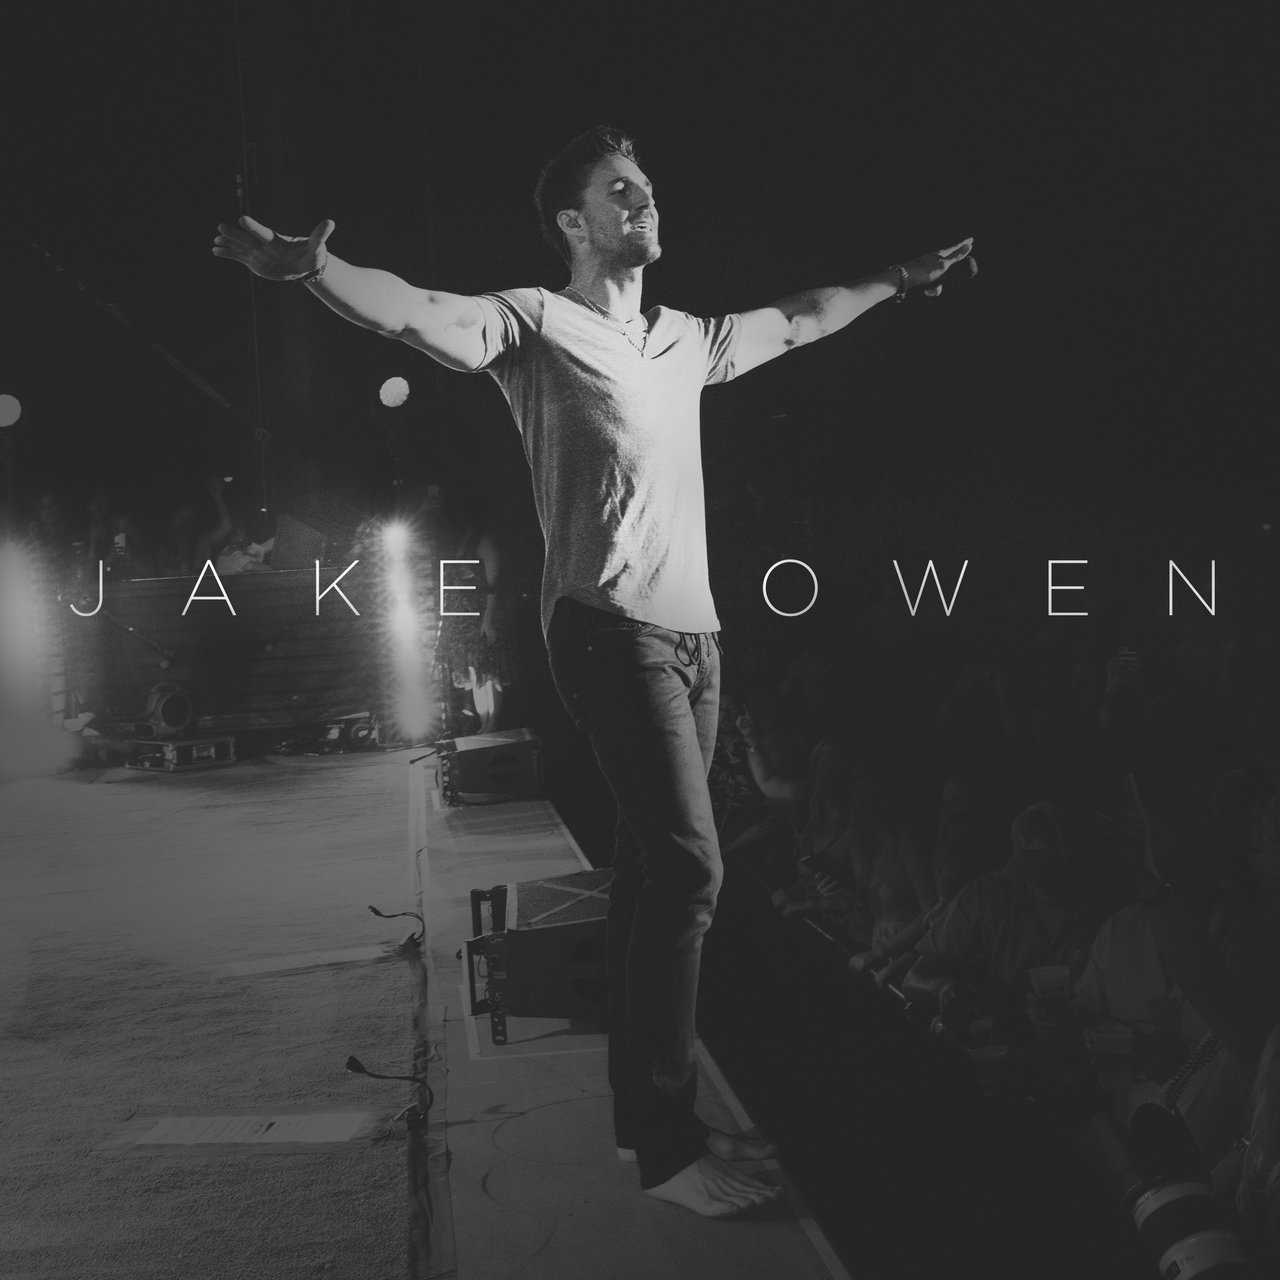 Jake owen on apple music.